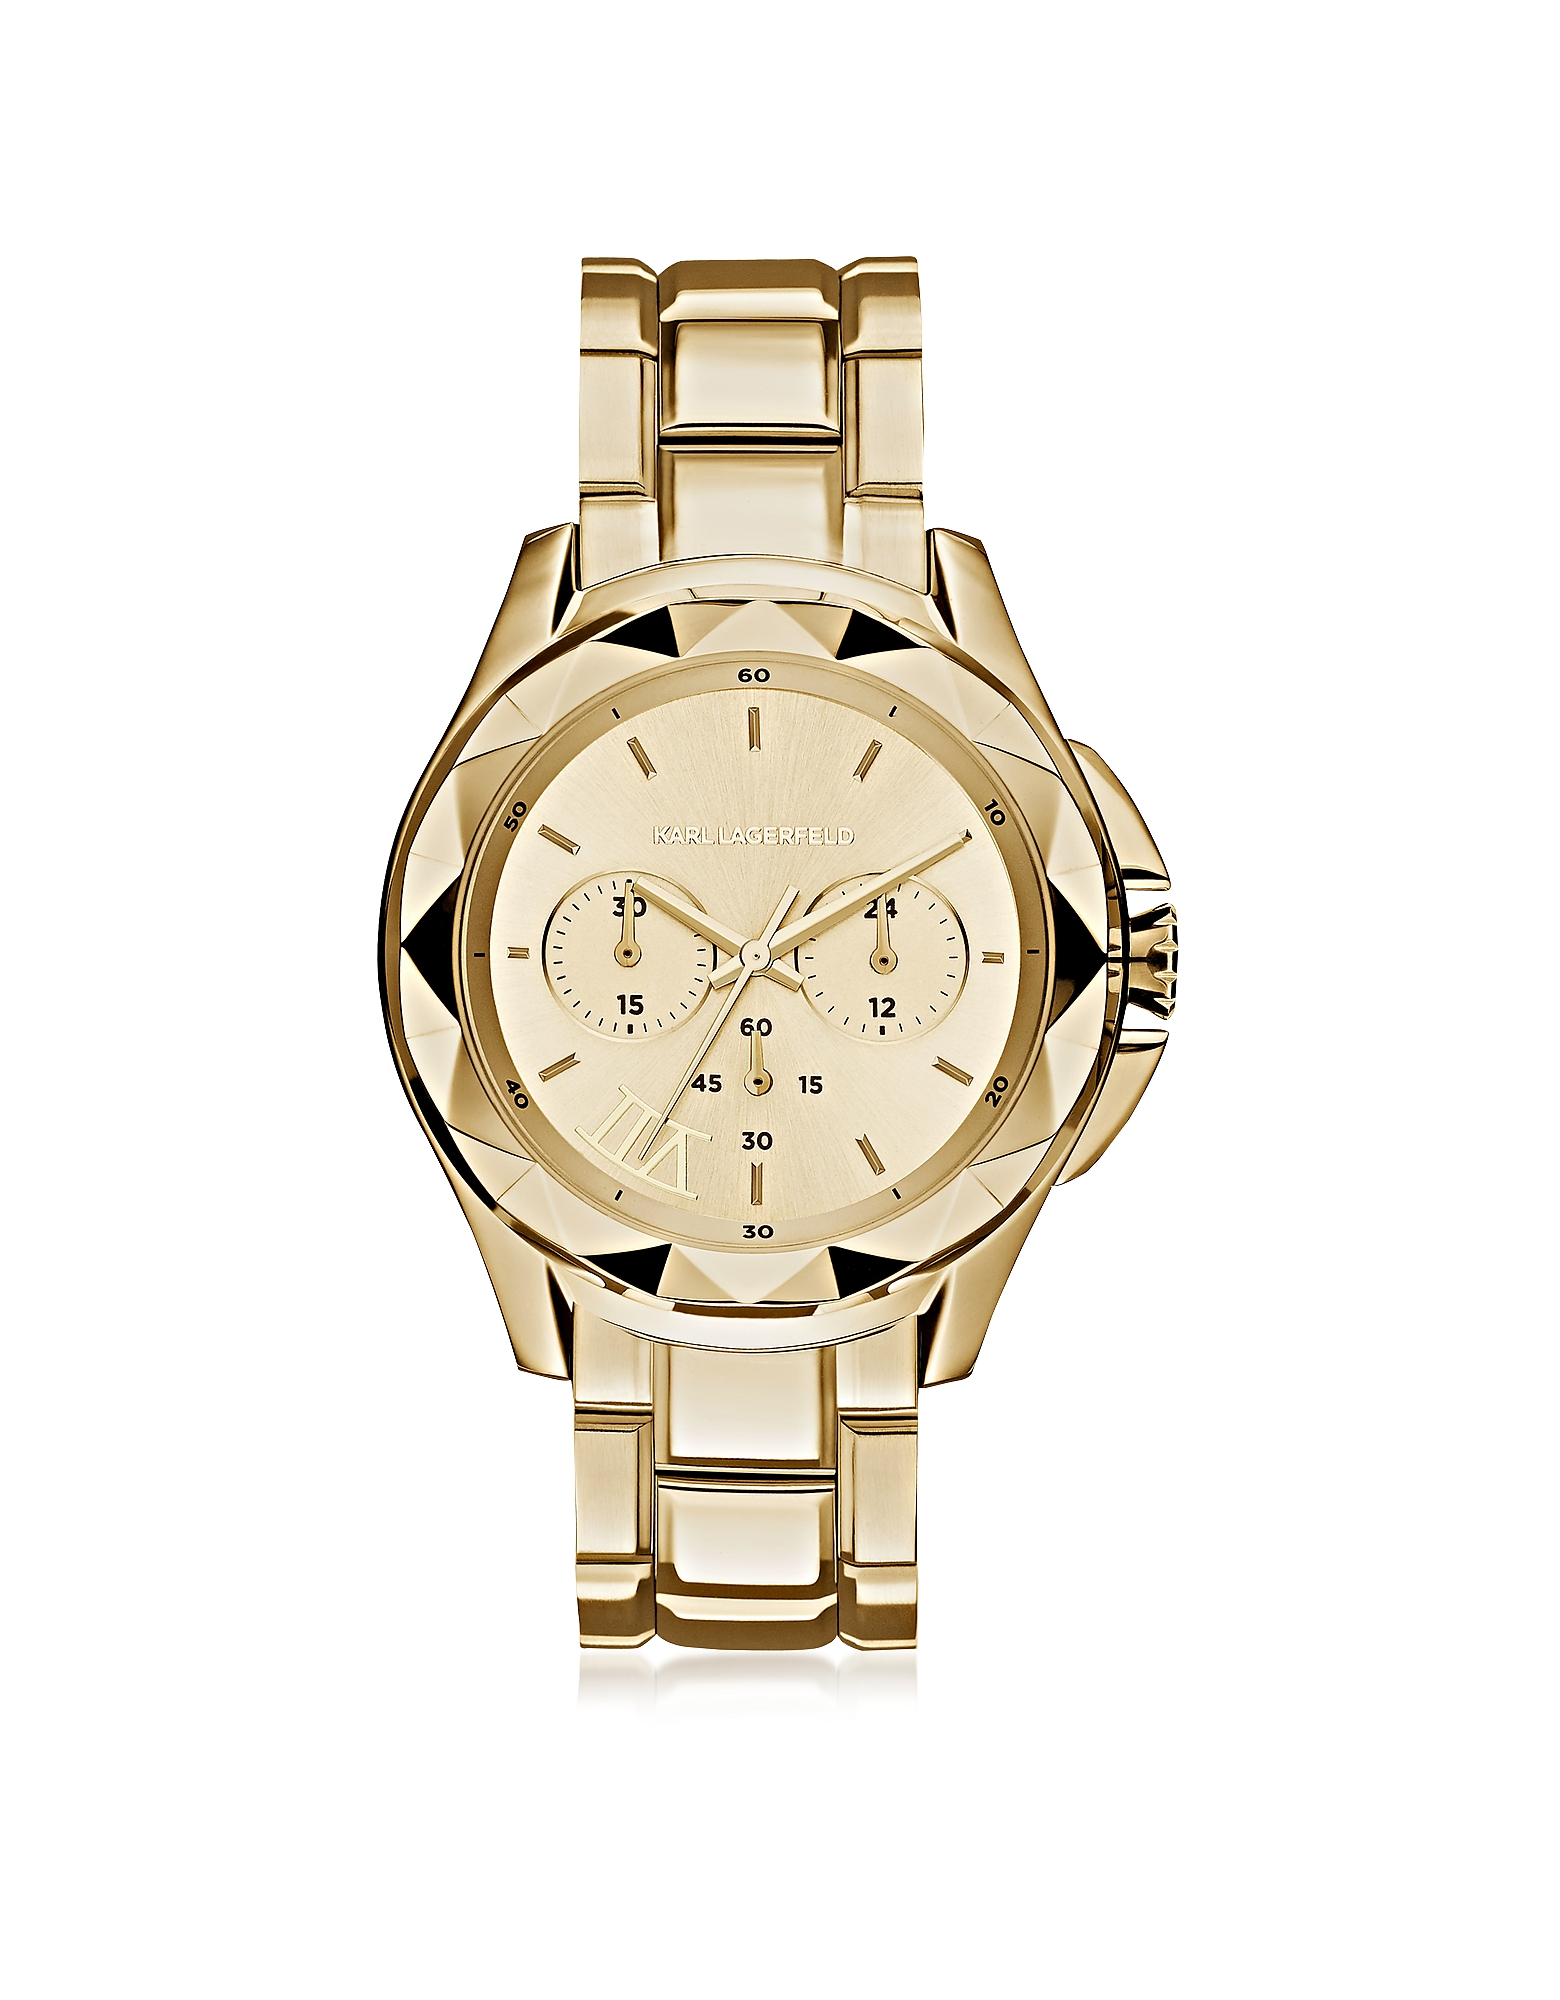 Karl Lagerfeld Women's Watches, Karl 7 Iconic Unisex Golden Chronograph Watch